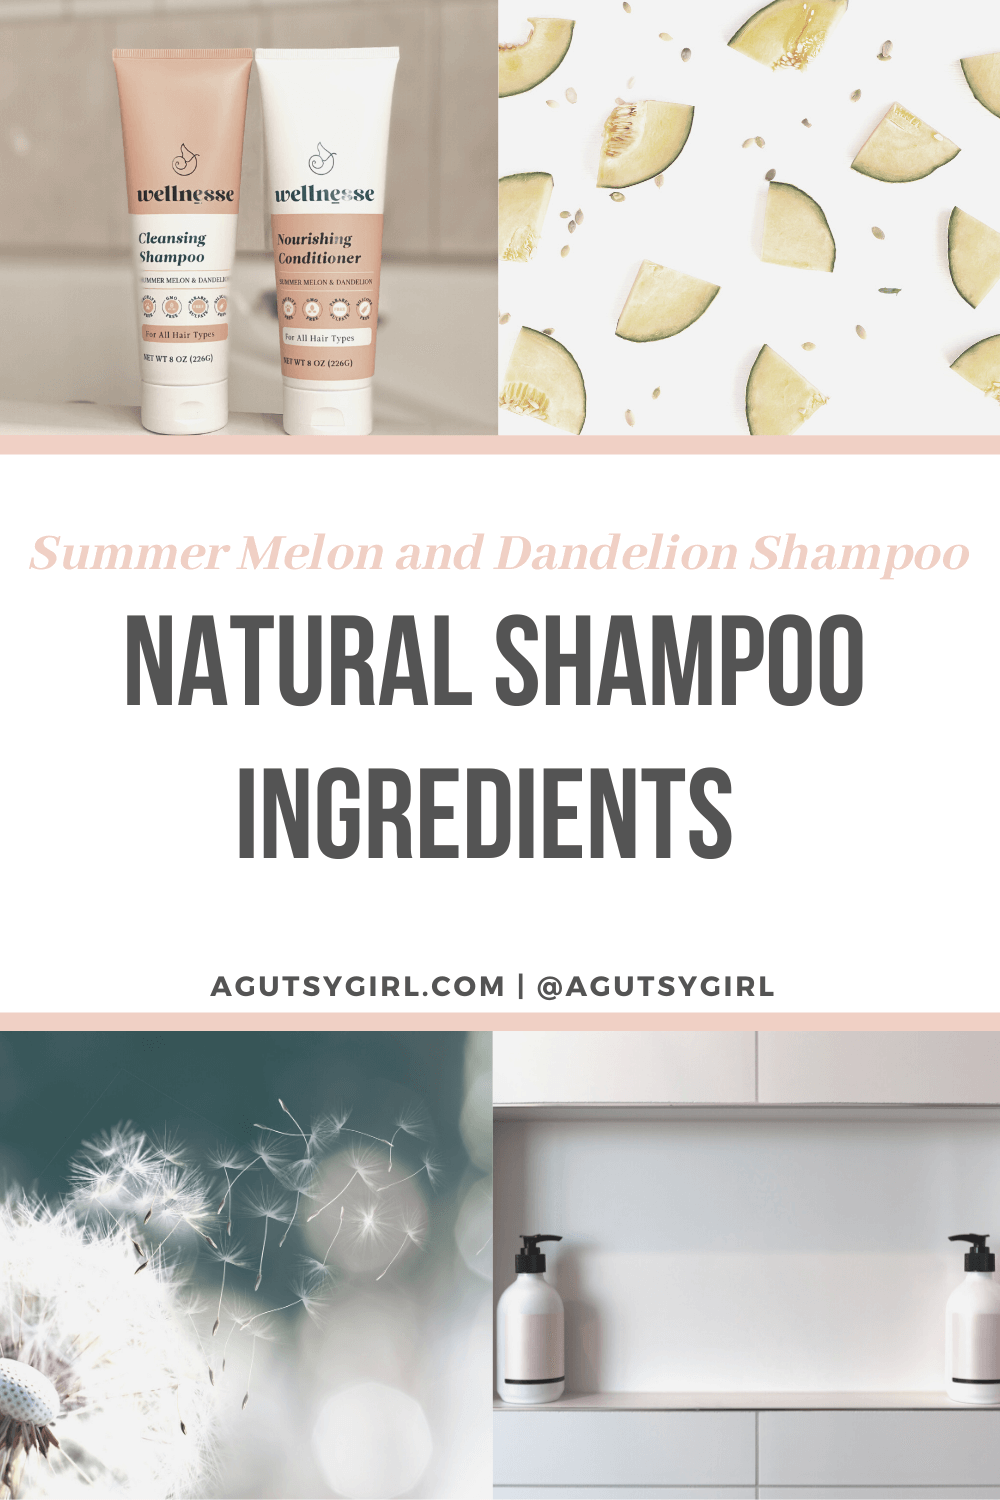 Natural Shampoo Ingredients agutsygirl.com #naturalproducts #shampoo #healthyliving #nontoxic Wellnesse personal care